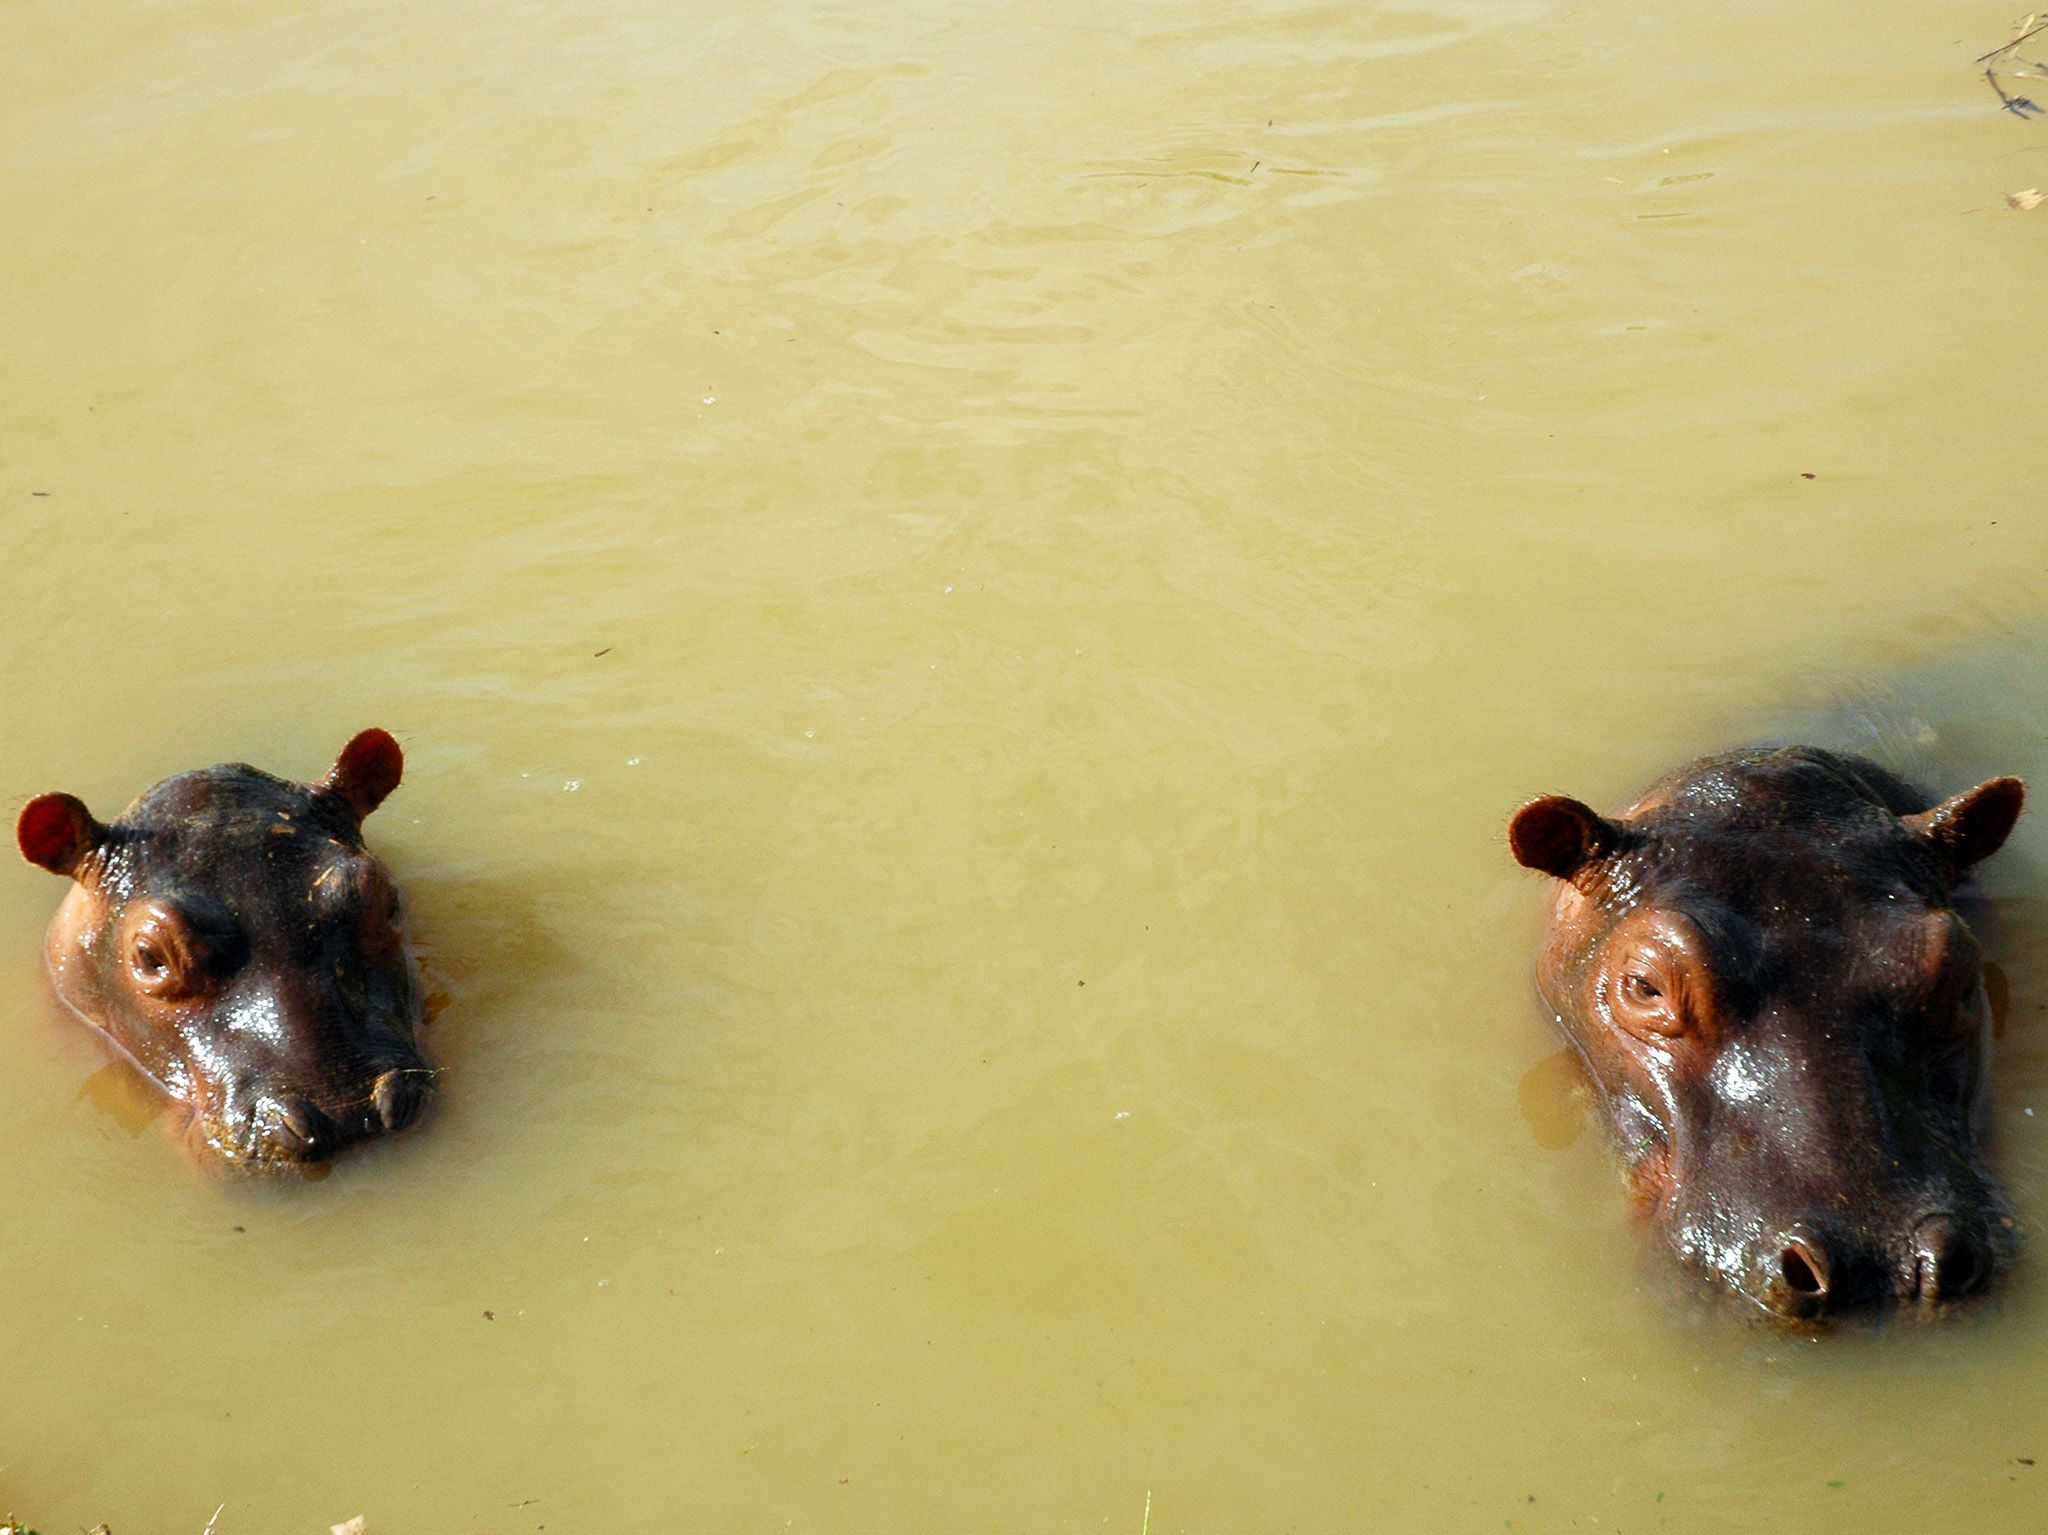 Two baby hippos in a pond, poking their heads out of the water. This image is from Invaders. [Photo of the day - August 2020]